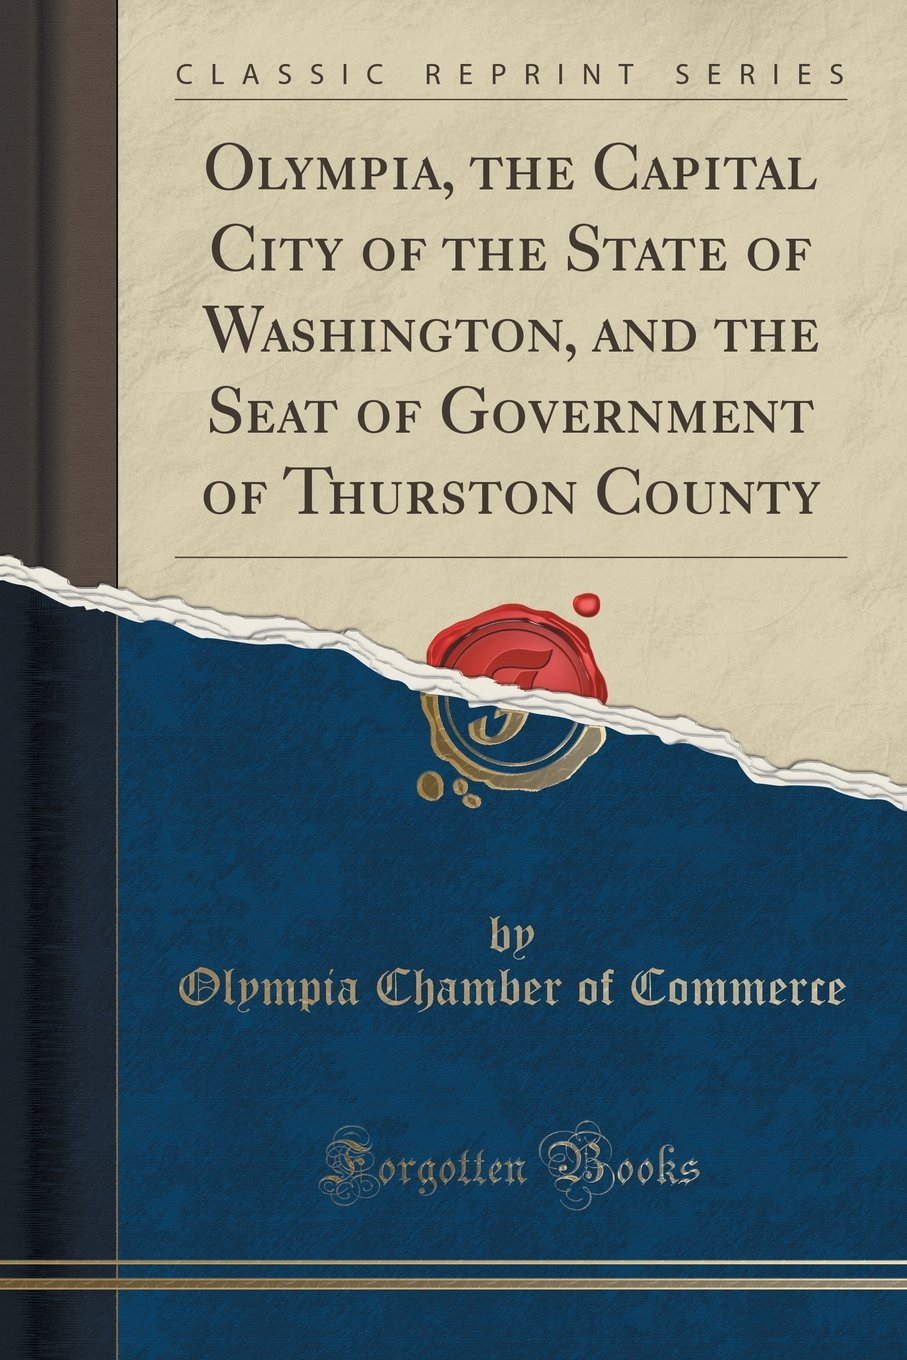 Read Online Olympia, the Capital City of the State of Washington, and the Seat of Government of Thurston County (Classic Reprint) ebook